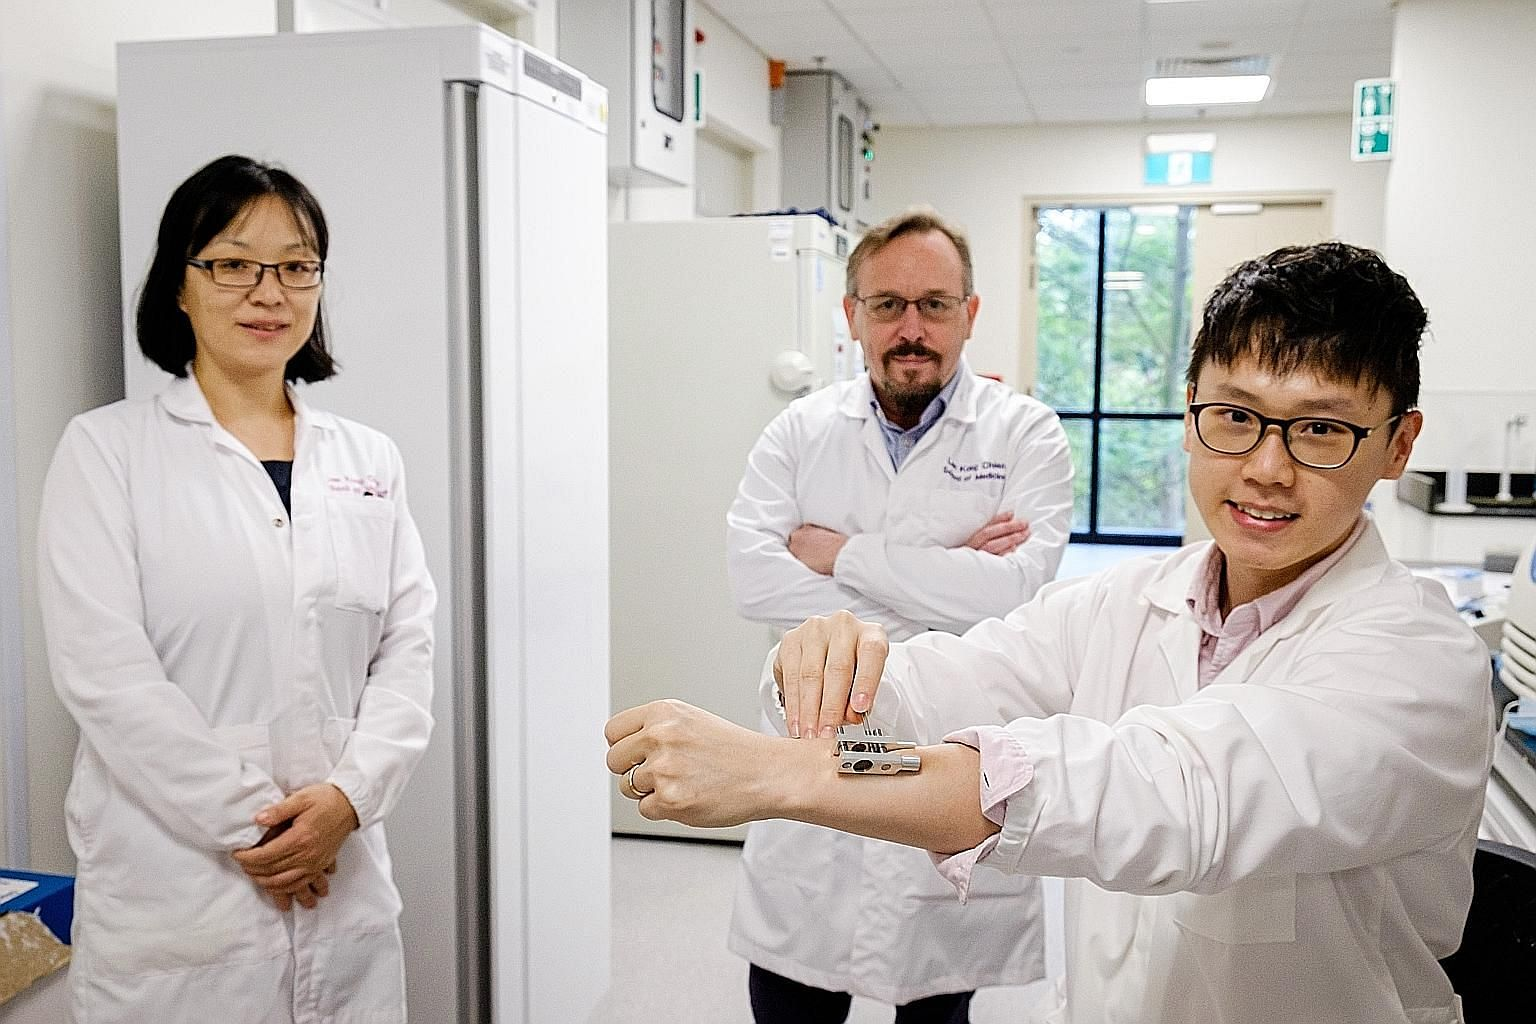 A*Star's Dr Daniel Lio (right) demonstrating his team's prototype device that uses two magnets to create temporary micropores to administer drugs more efficiently through the skin. With him are team members Wang Xiaomeng and David Laurence Becker of